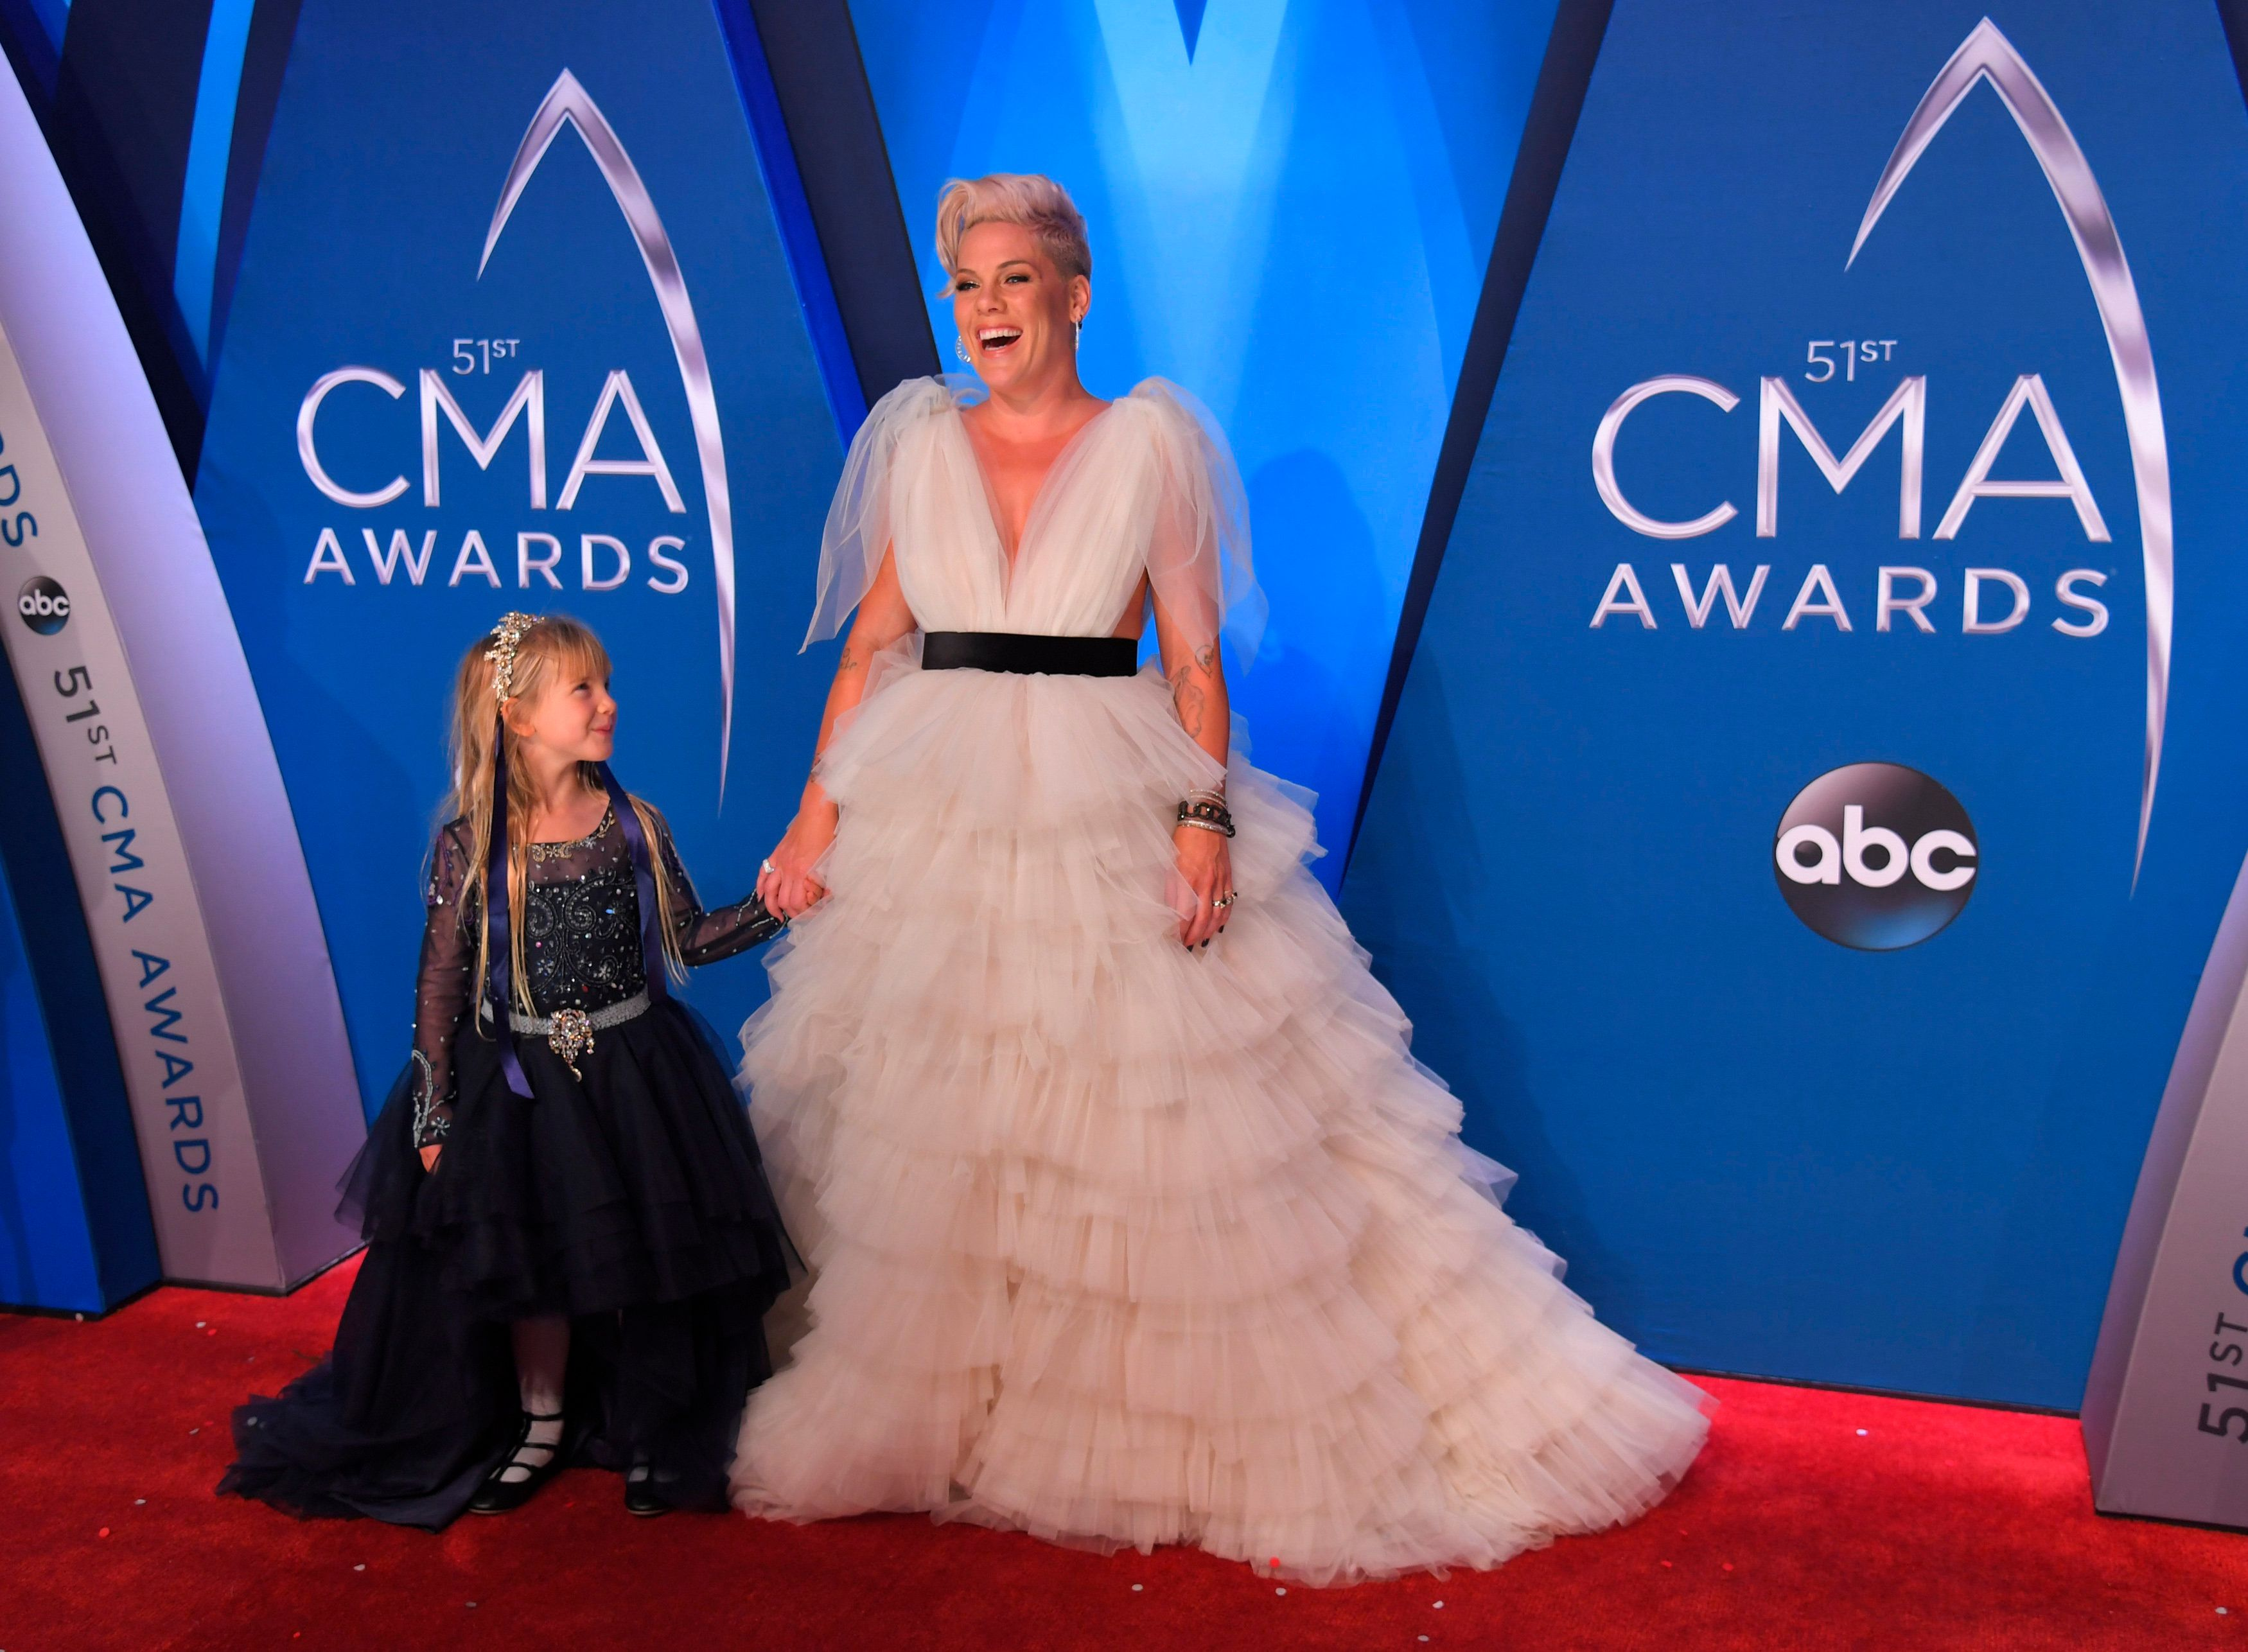 """Pink attended the CMA Awards to promote her new album, """"Beautiful Trauma"""" and perform her song """"Barbies"""" as the featured pop-star guest."""